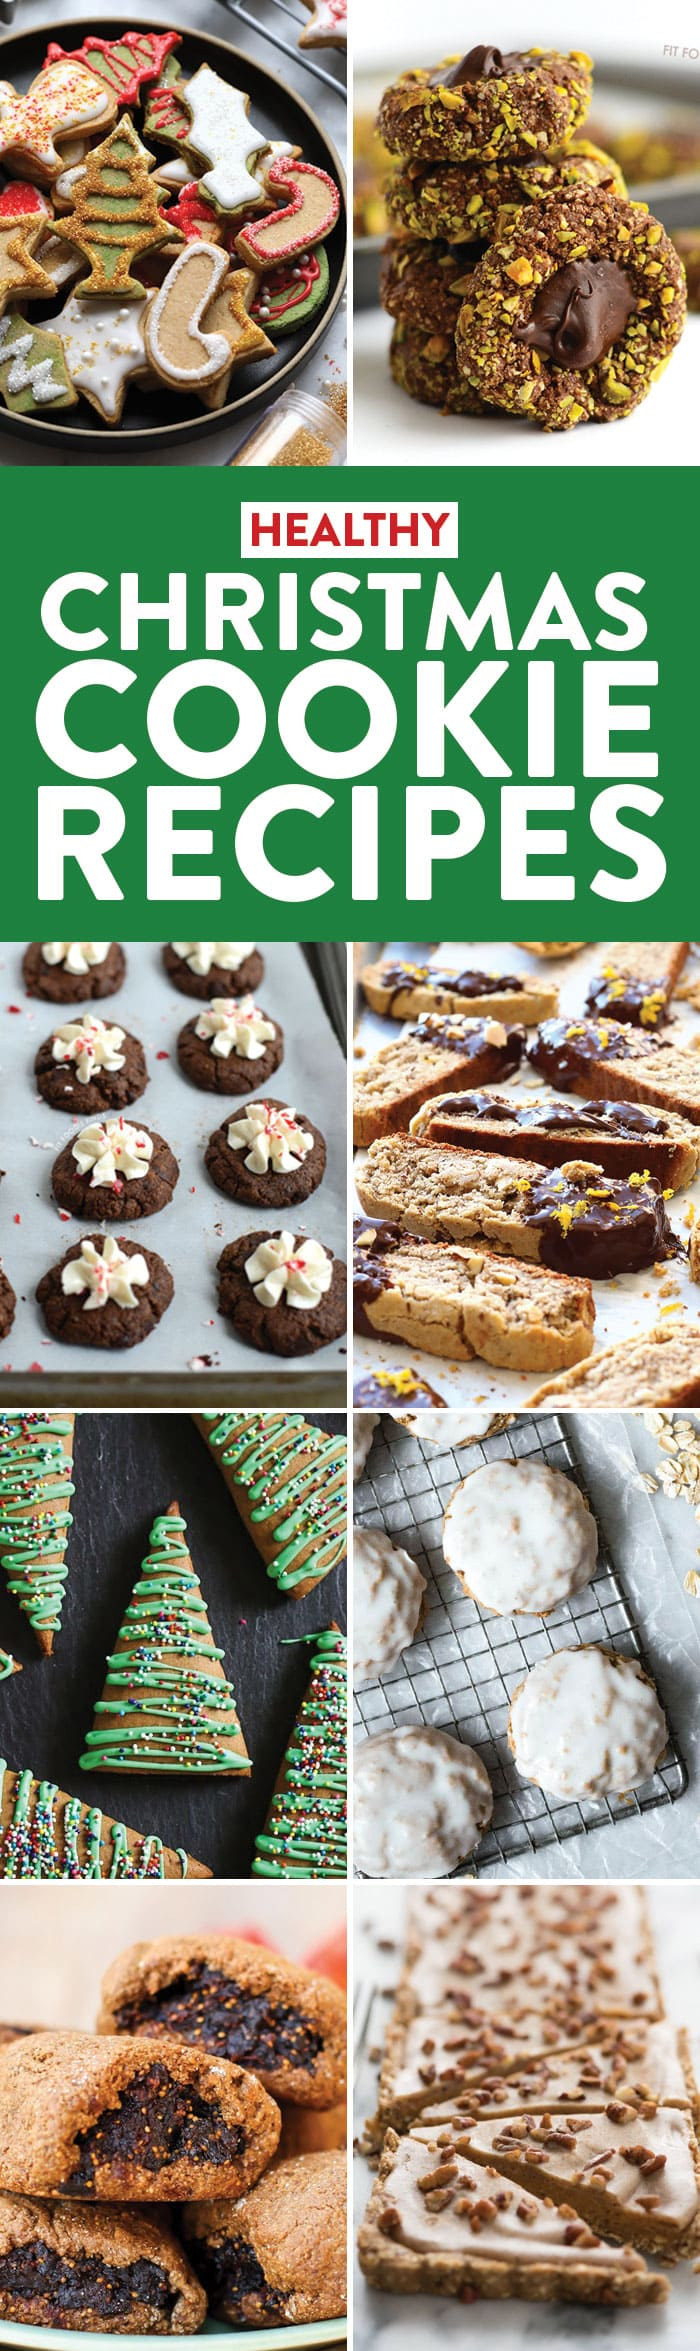 We've rounded up 50 of the healthiest and most delicious holiday cookie recipes for all of the healthy cookie inspiration you'll need this holiday season! From unique recipe ideas to healthy twists on holiday cookie classics, these tasty treats will not disappoint.